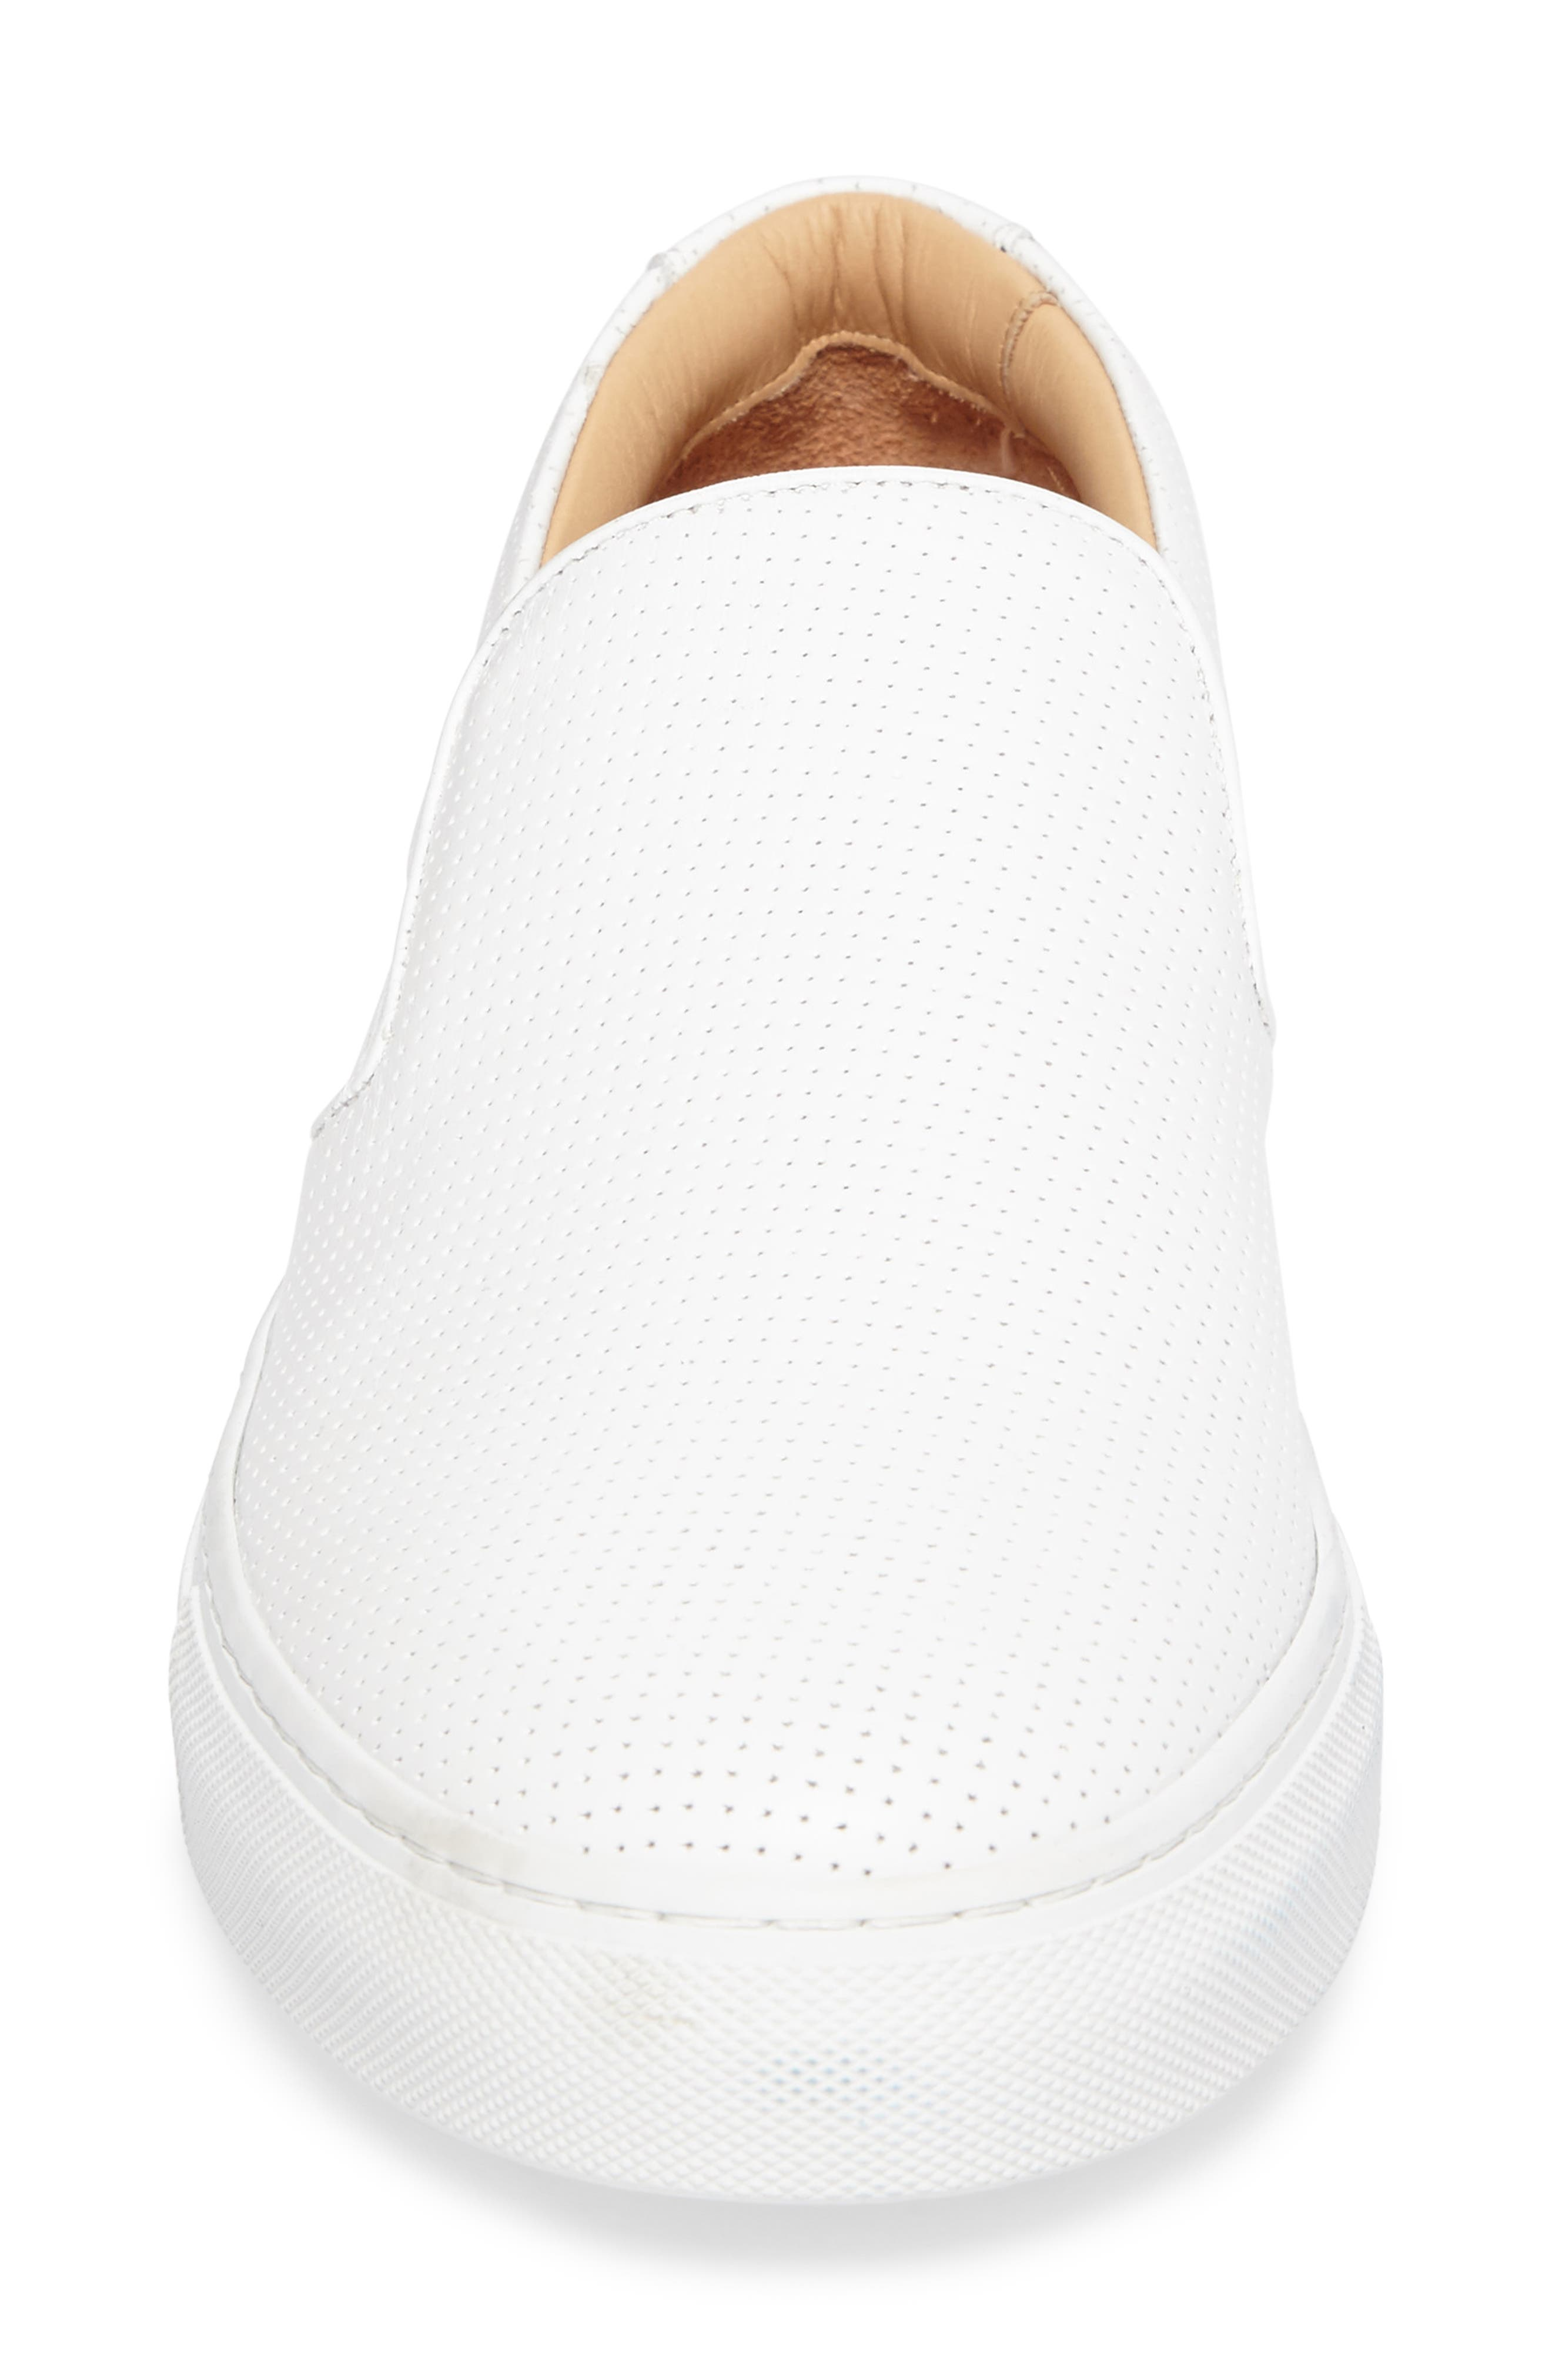 Wooster Slip-On Sneaker,                             Alternate thumbnail 4, color,                             WHITE PERFORATED LEATHER